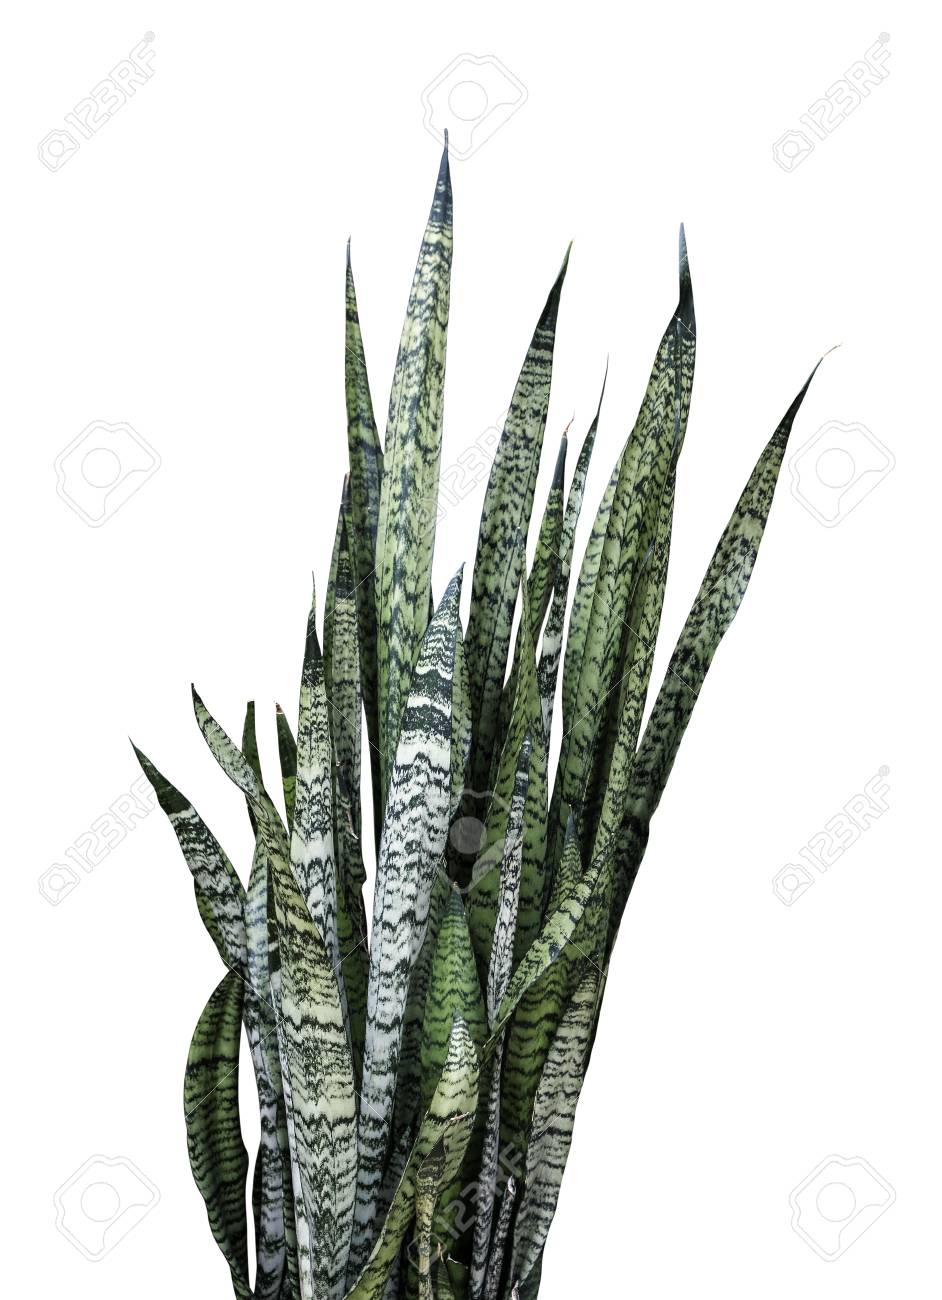 Sansevieria Trifasciata Or Snake Plant Isolated On White Background Stock Photo Picture And Royalty Free Image Image 106376279